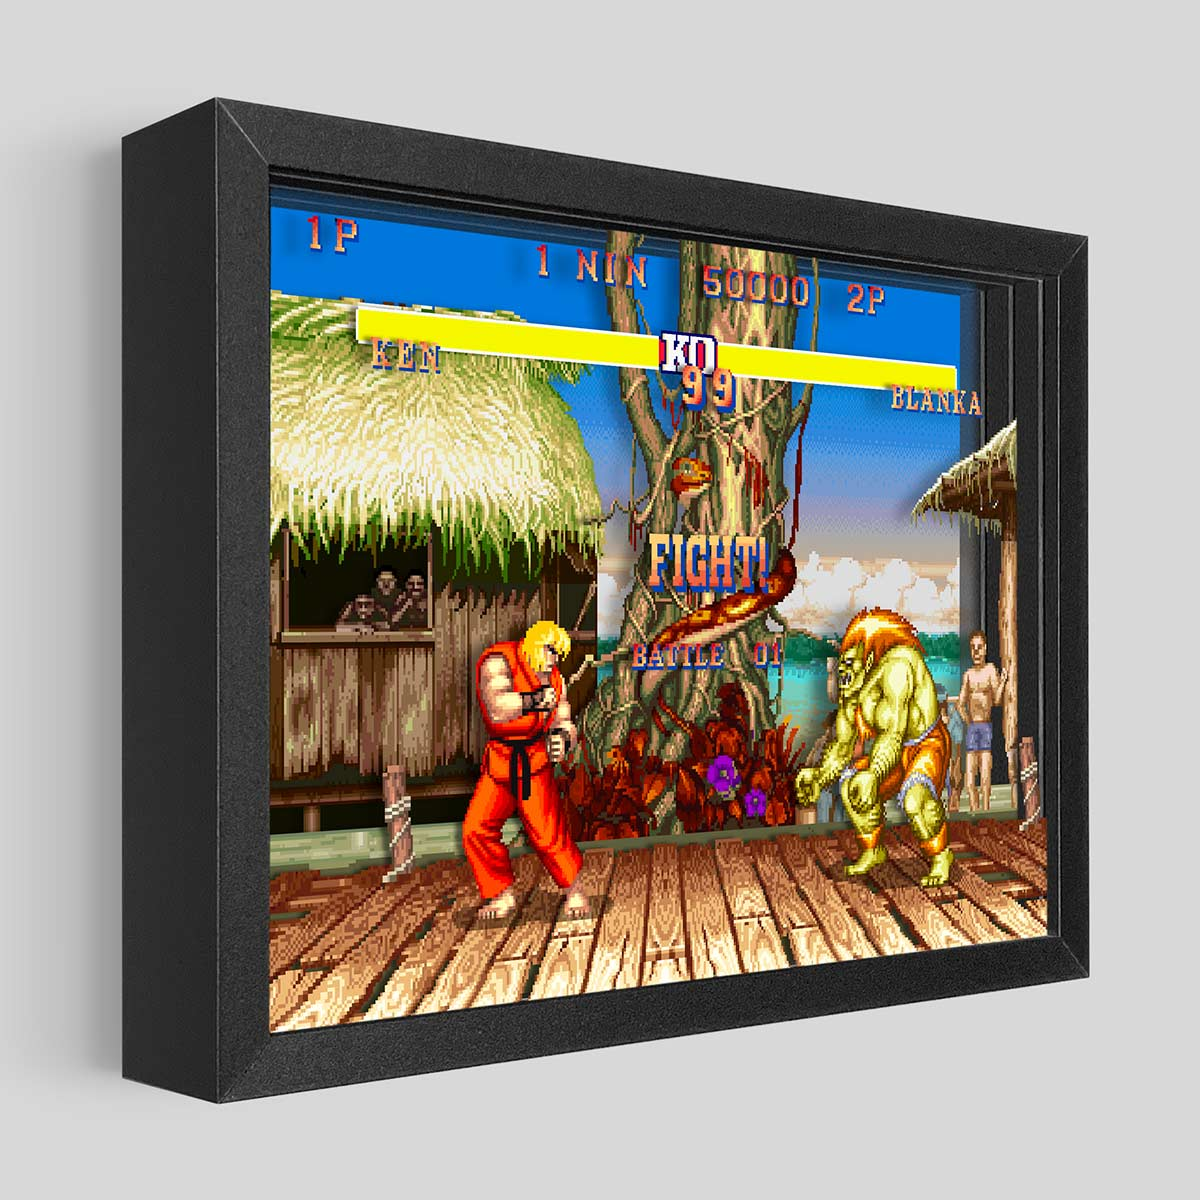 Street Fighter Shadowbox Art - Blanka vs. Ken